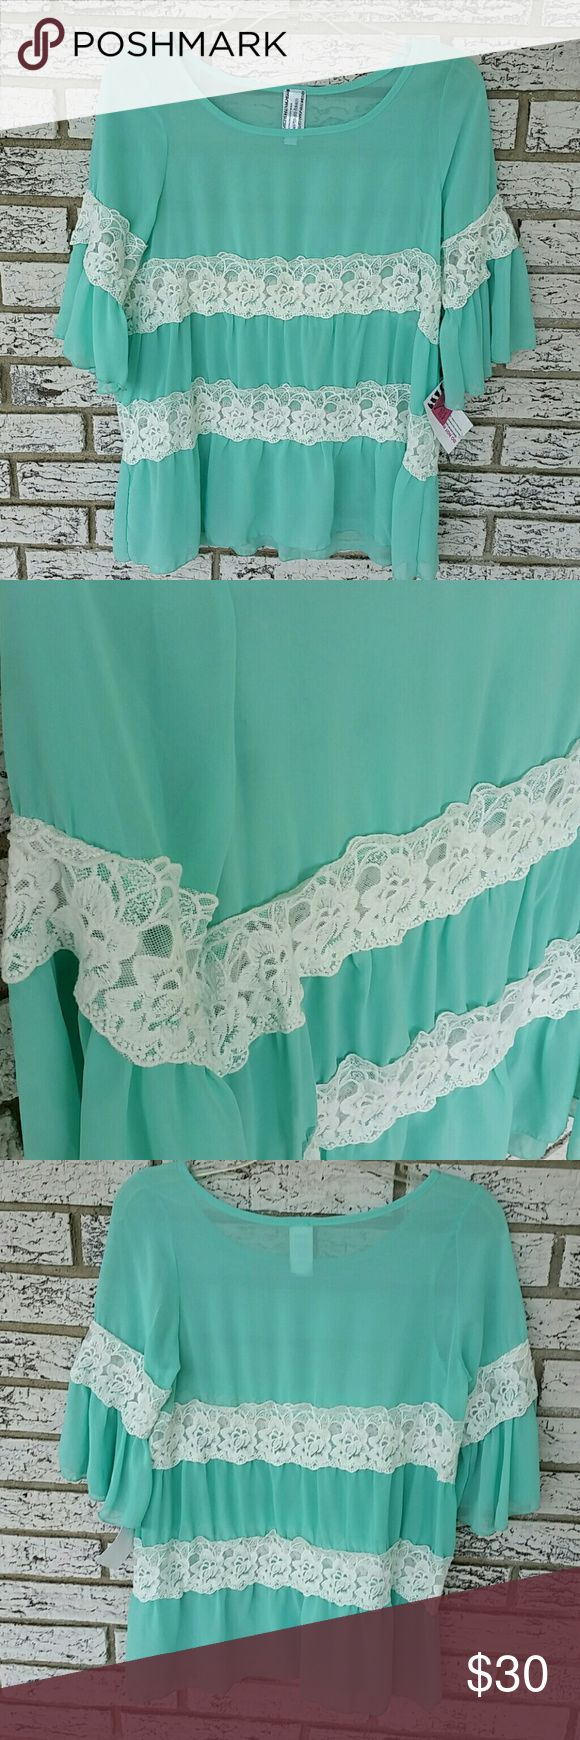 Sheer blouse Beautiful lace work, flows with every walk. 3/4 length sleeves 100% polyester Giddy up Glamour  Tops Blouses